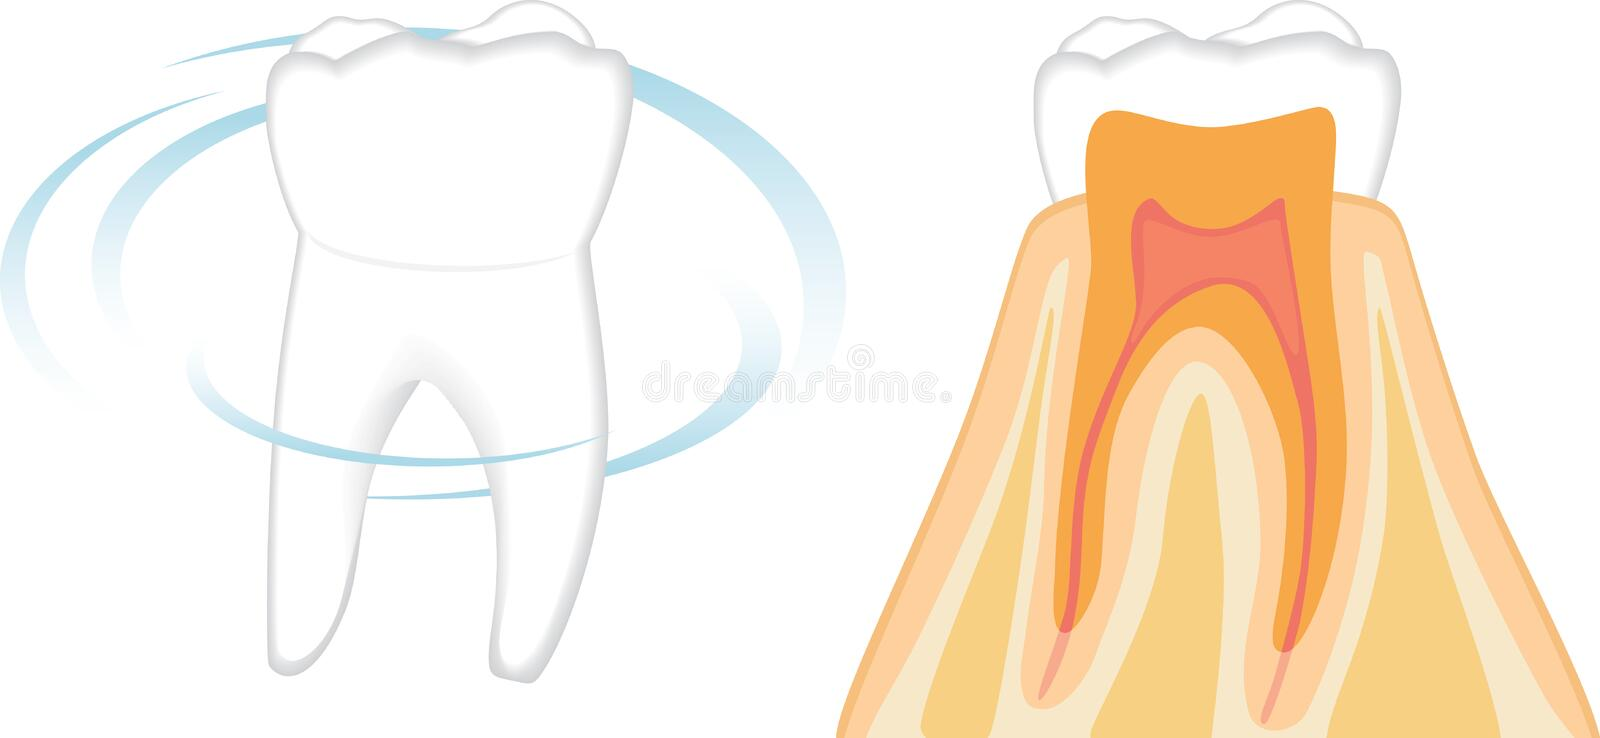 Structure of the healthy tooth royalty free stock photos